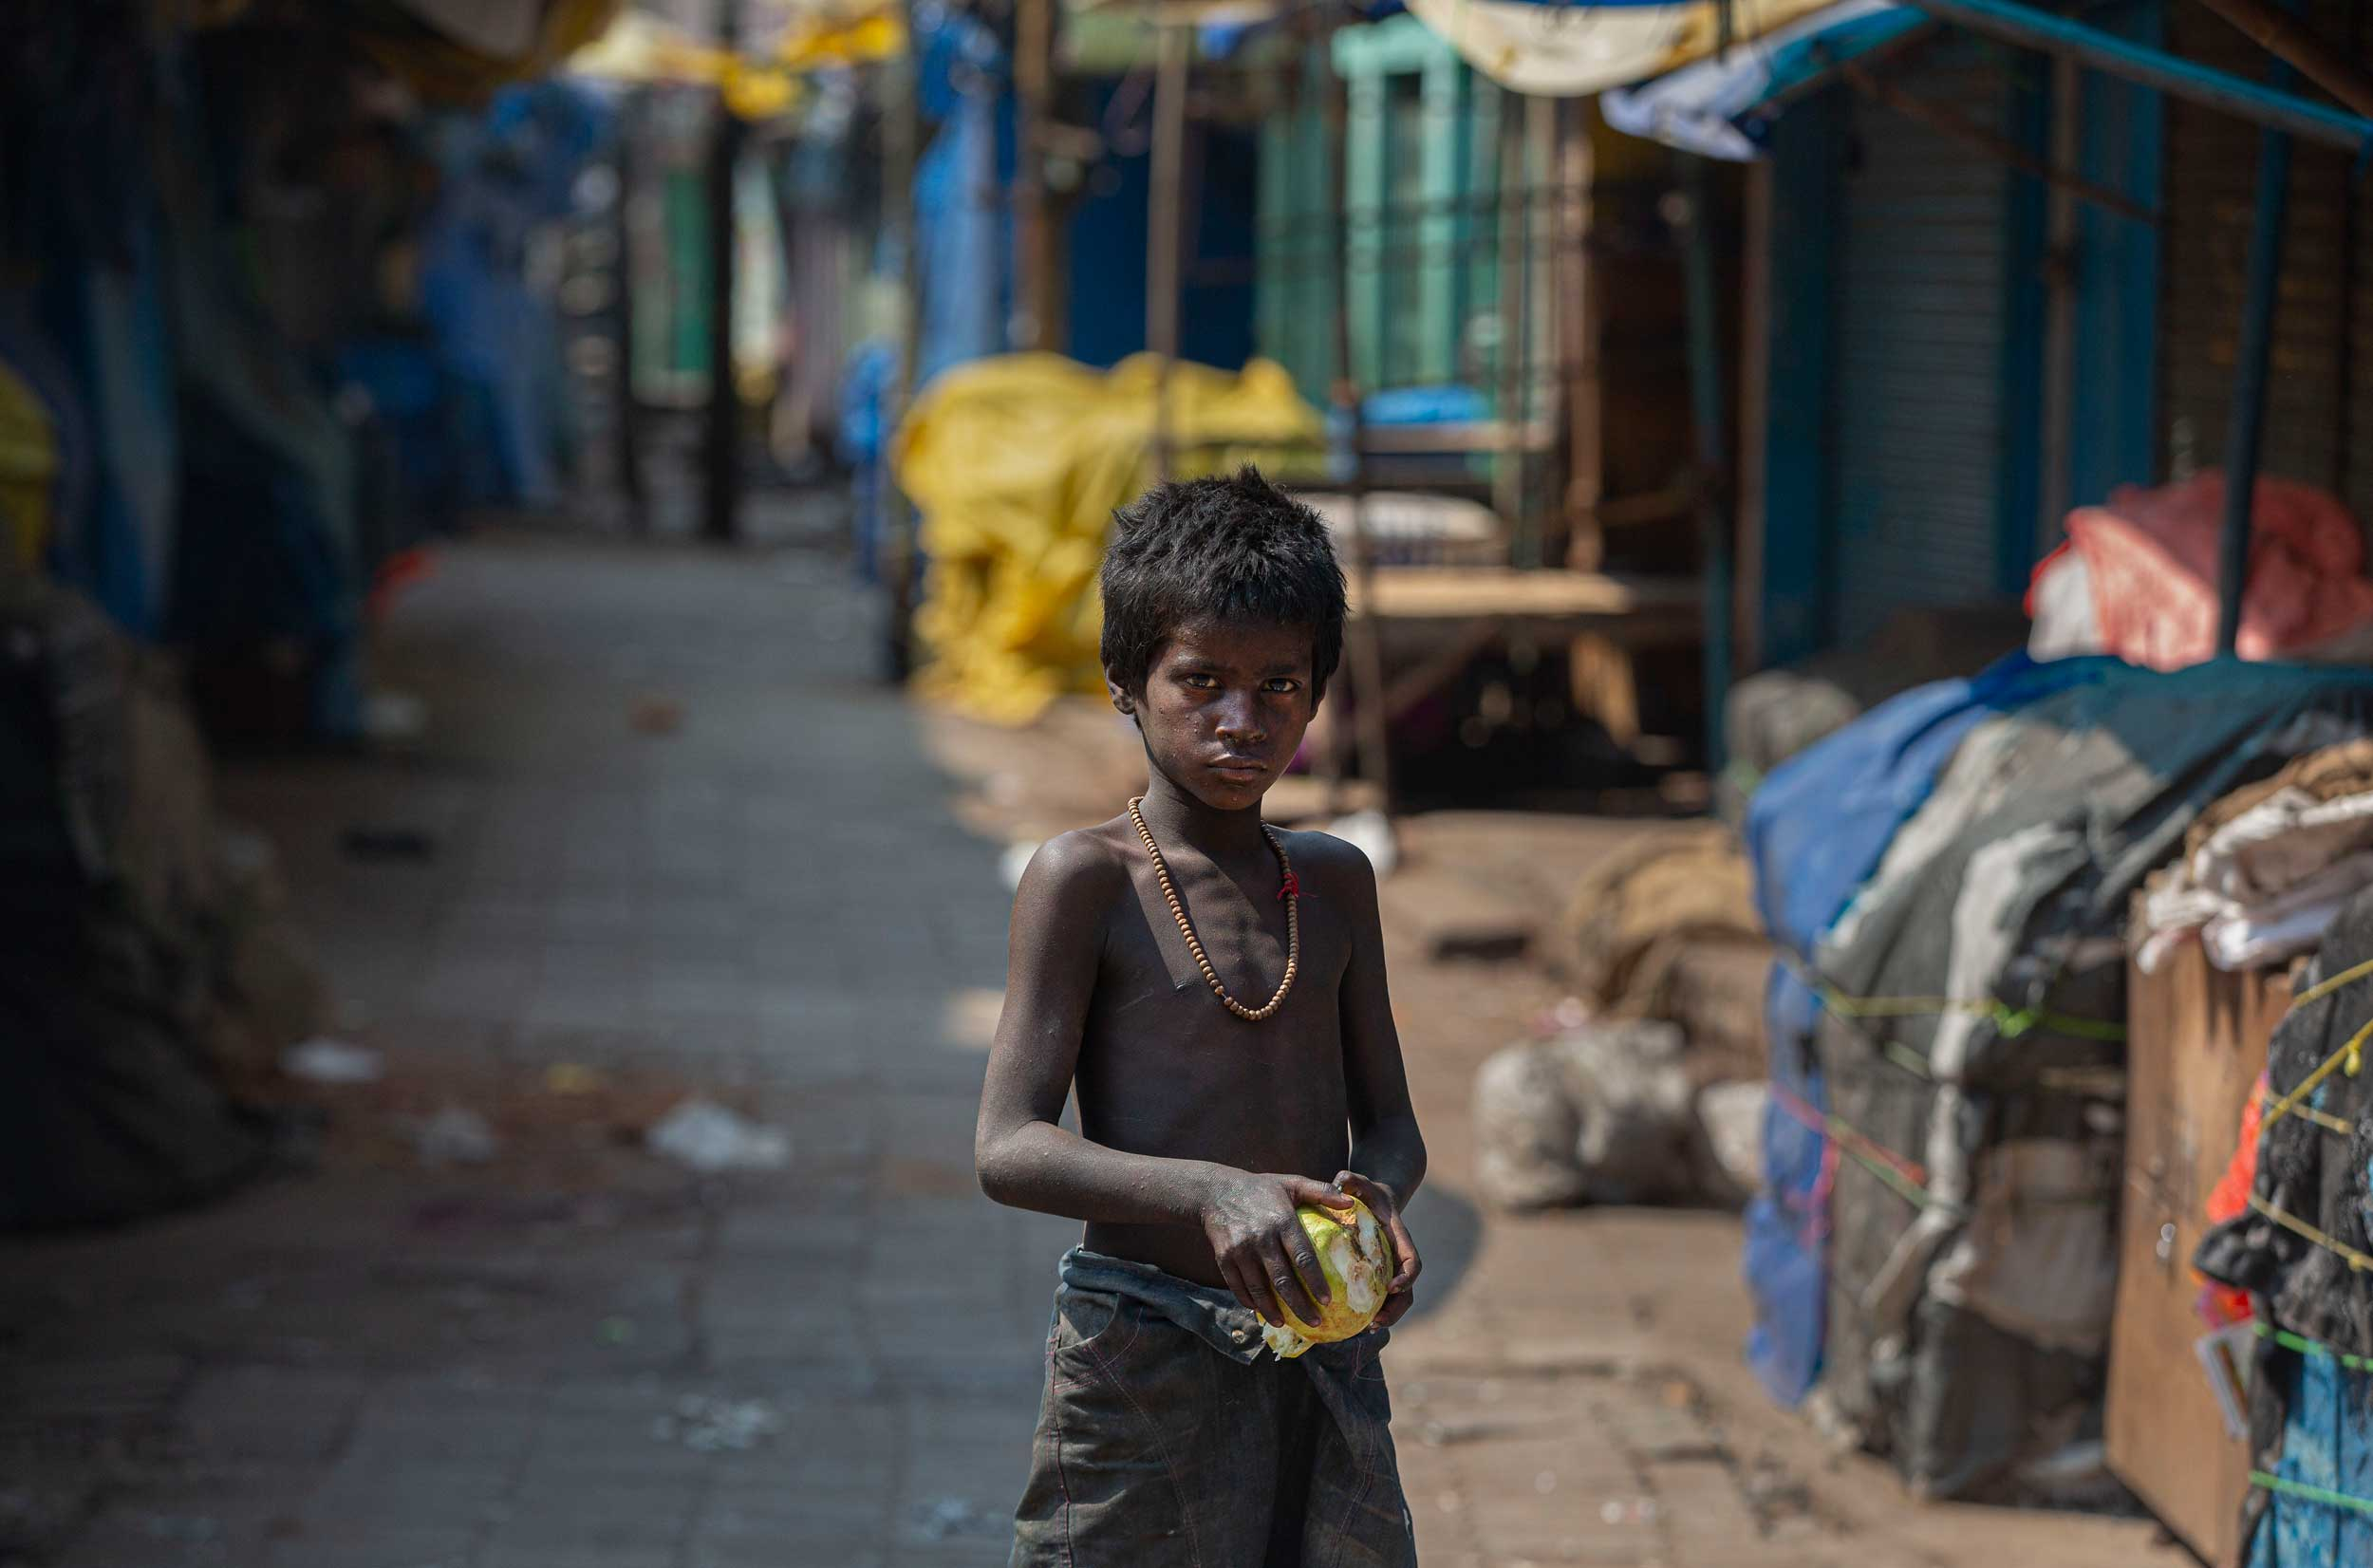 A homeless boy collects rotten fruits from a deserted market during the Covid-19 lockdown in Guwahati on Wednesday.